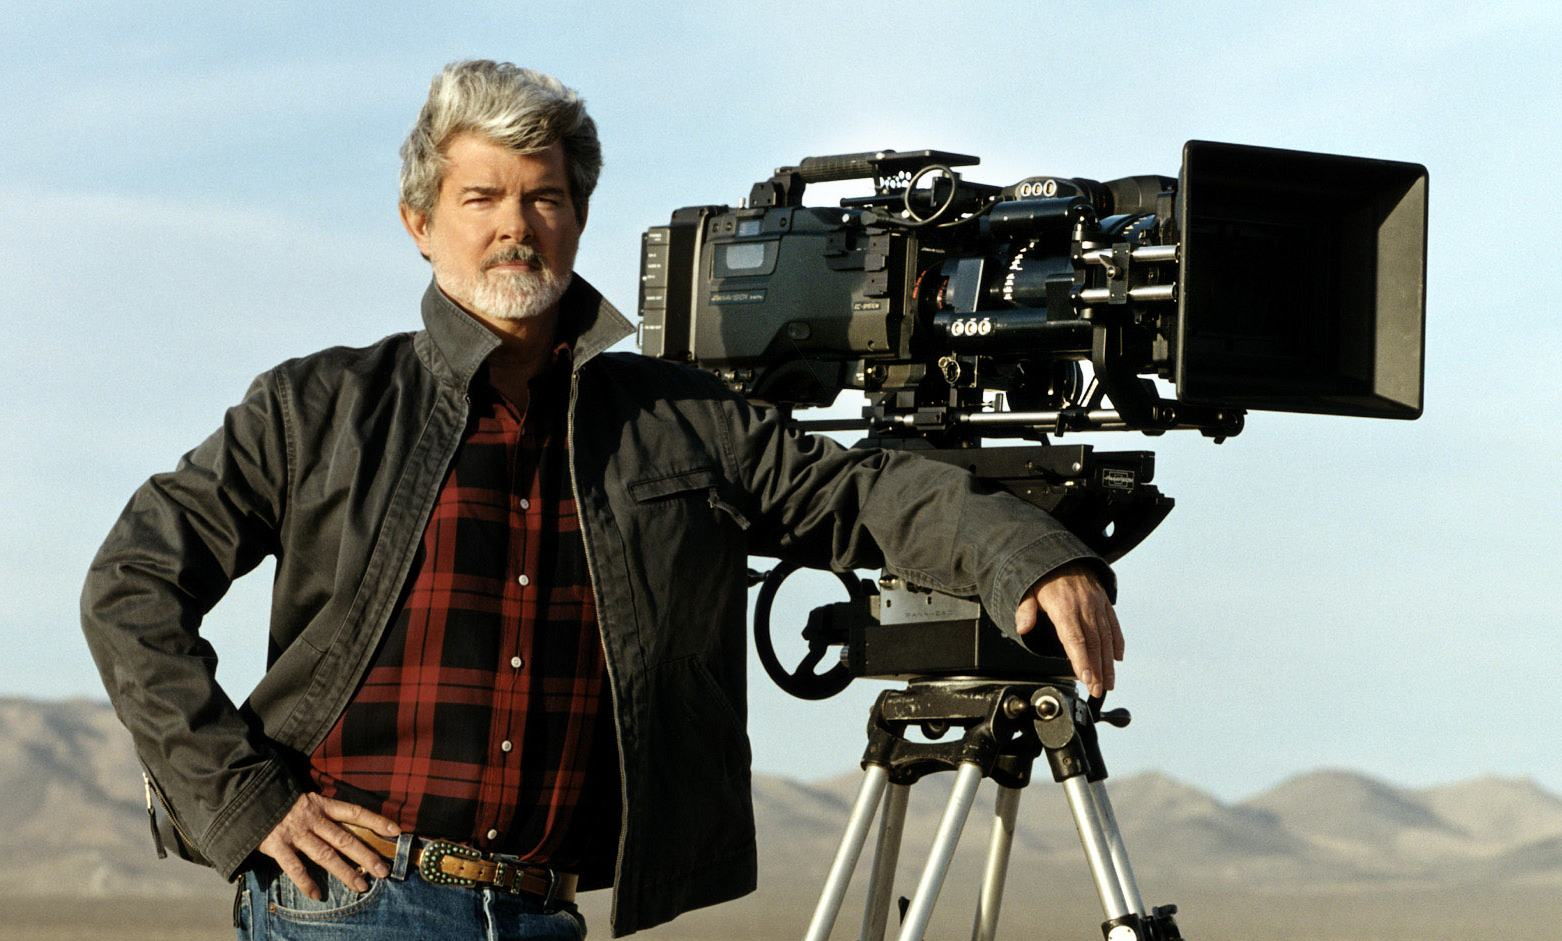 GEORGE LUCAS - The visionary writer / director who married groundbreaking spectacles with legendary pulp storytelling to reimagine the rousing sci-fi adventures of yesteryear for the 20th century in   Star Wars  . His before-its-time marketing acumen propelled the film series into the history books.